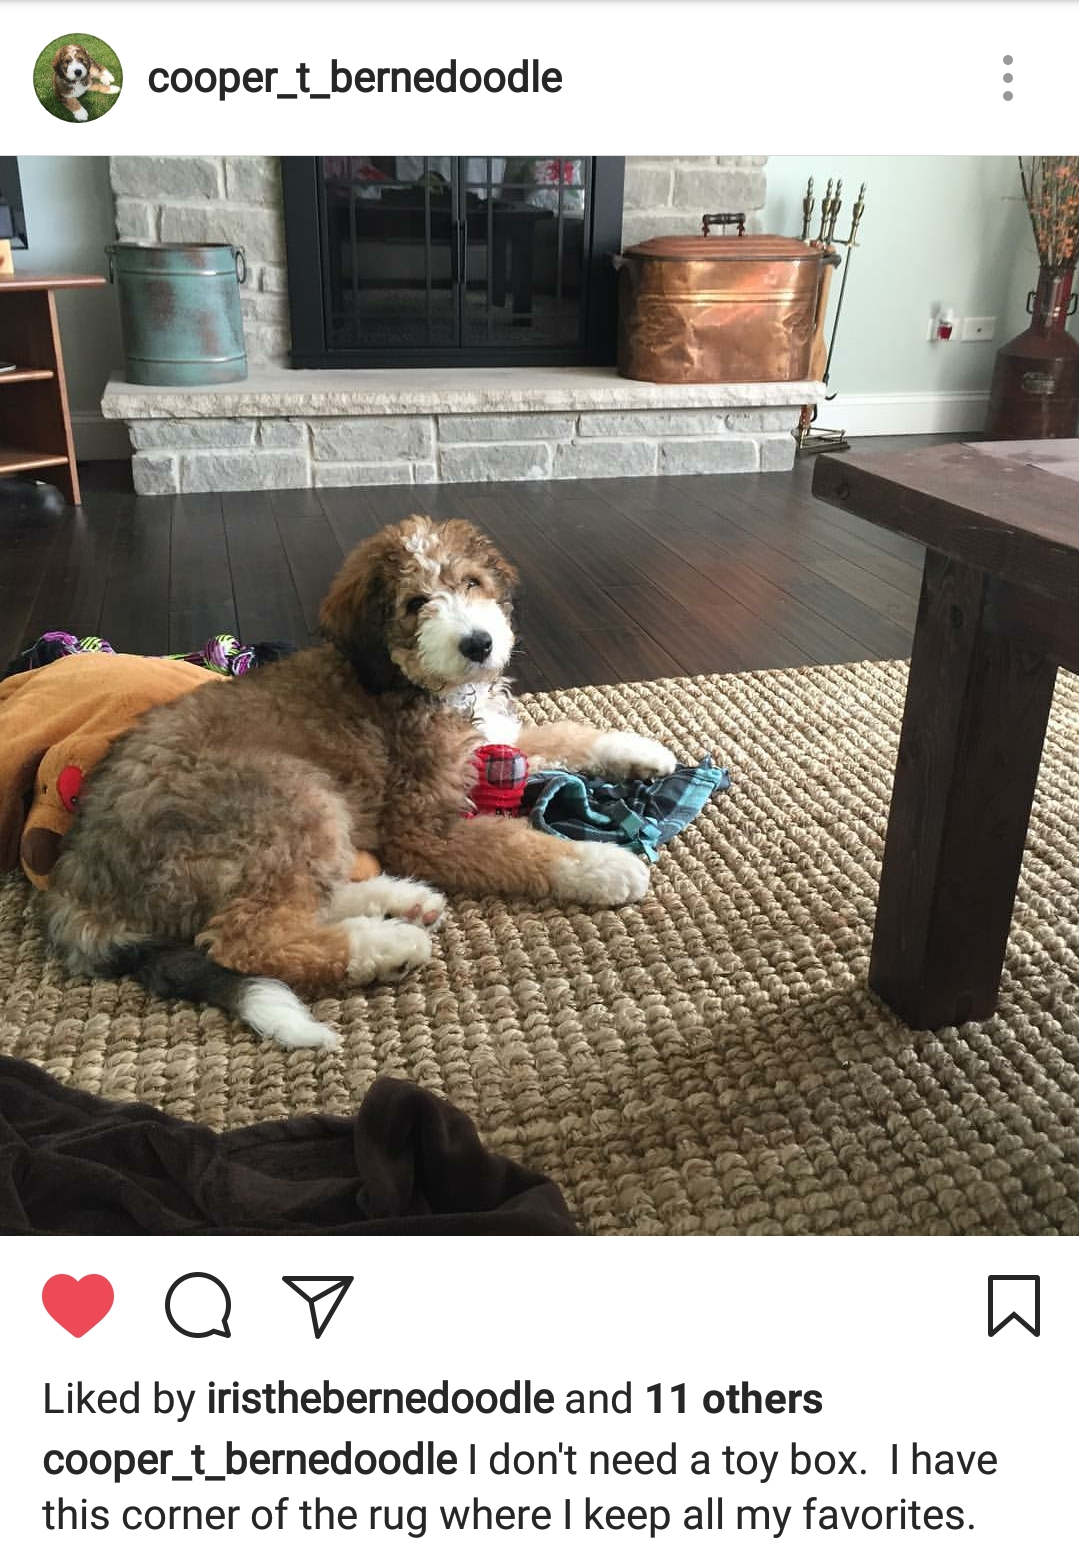 Cooper formerly Houston loving his new home in Chicago. You can find more pics of him on Instagram Cooper_T_Bernedoodle